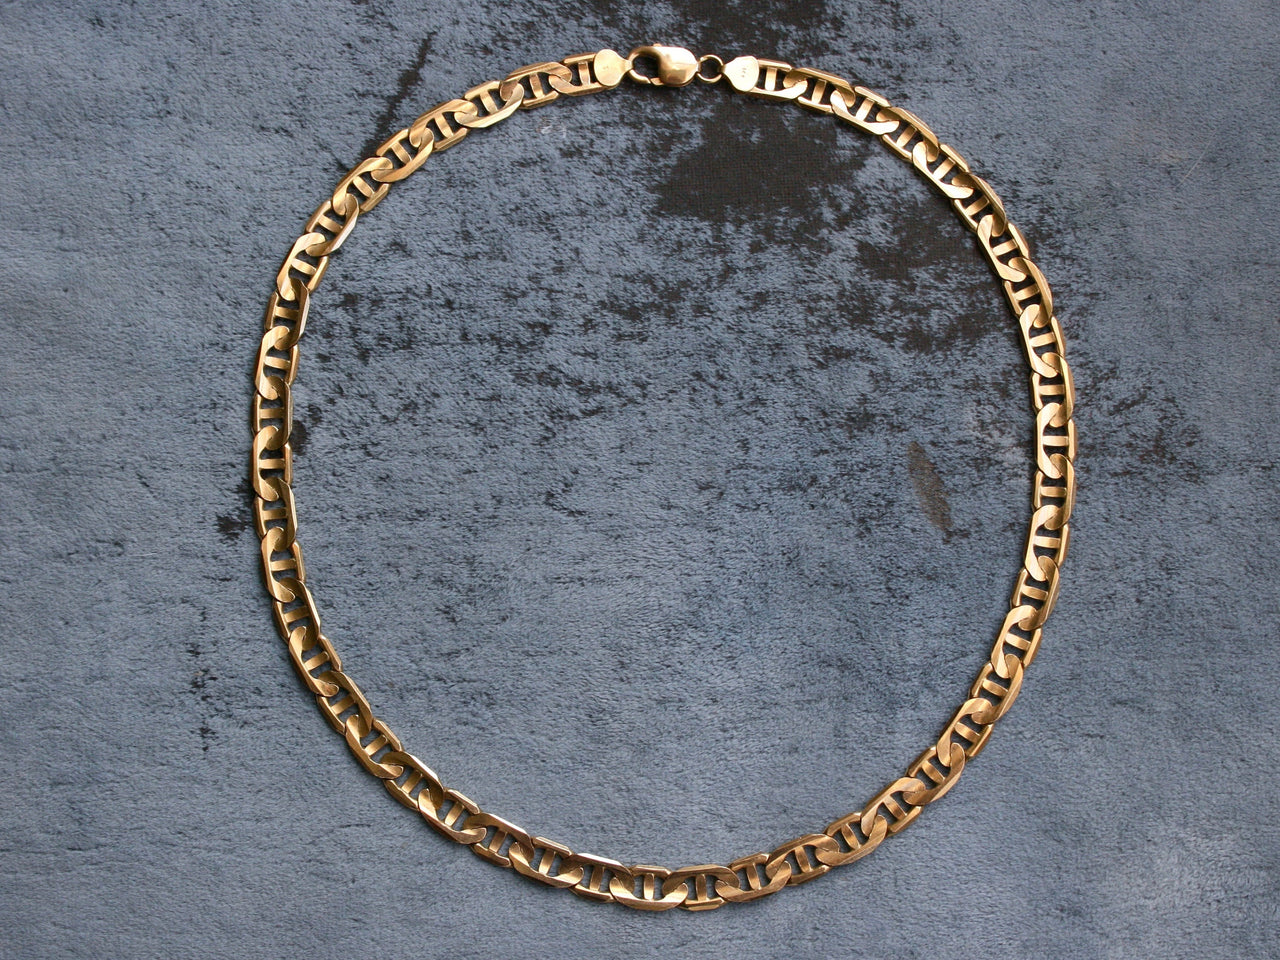 Gorgeous Vintage 14K Yellow Gold Modified Curbed Link Chain, 20.5 inches.